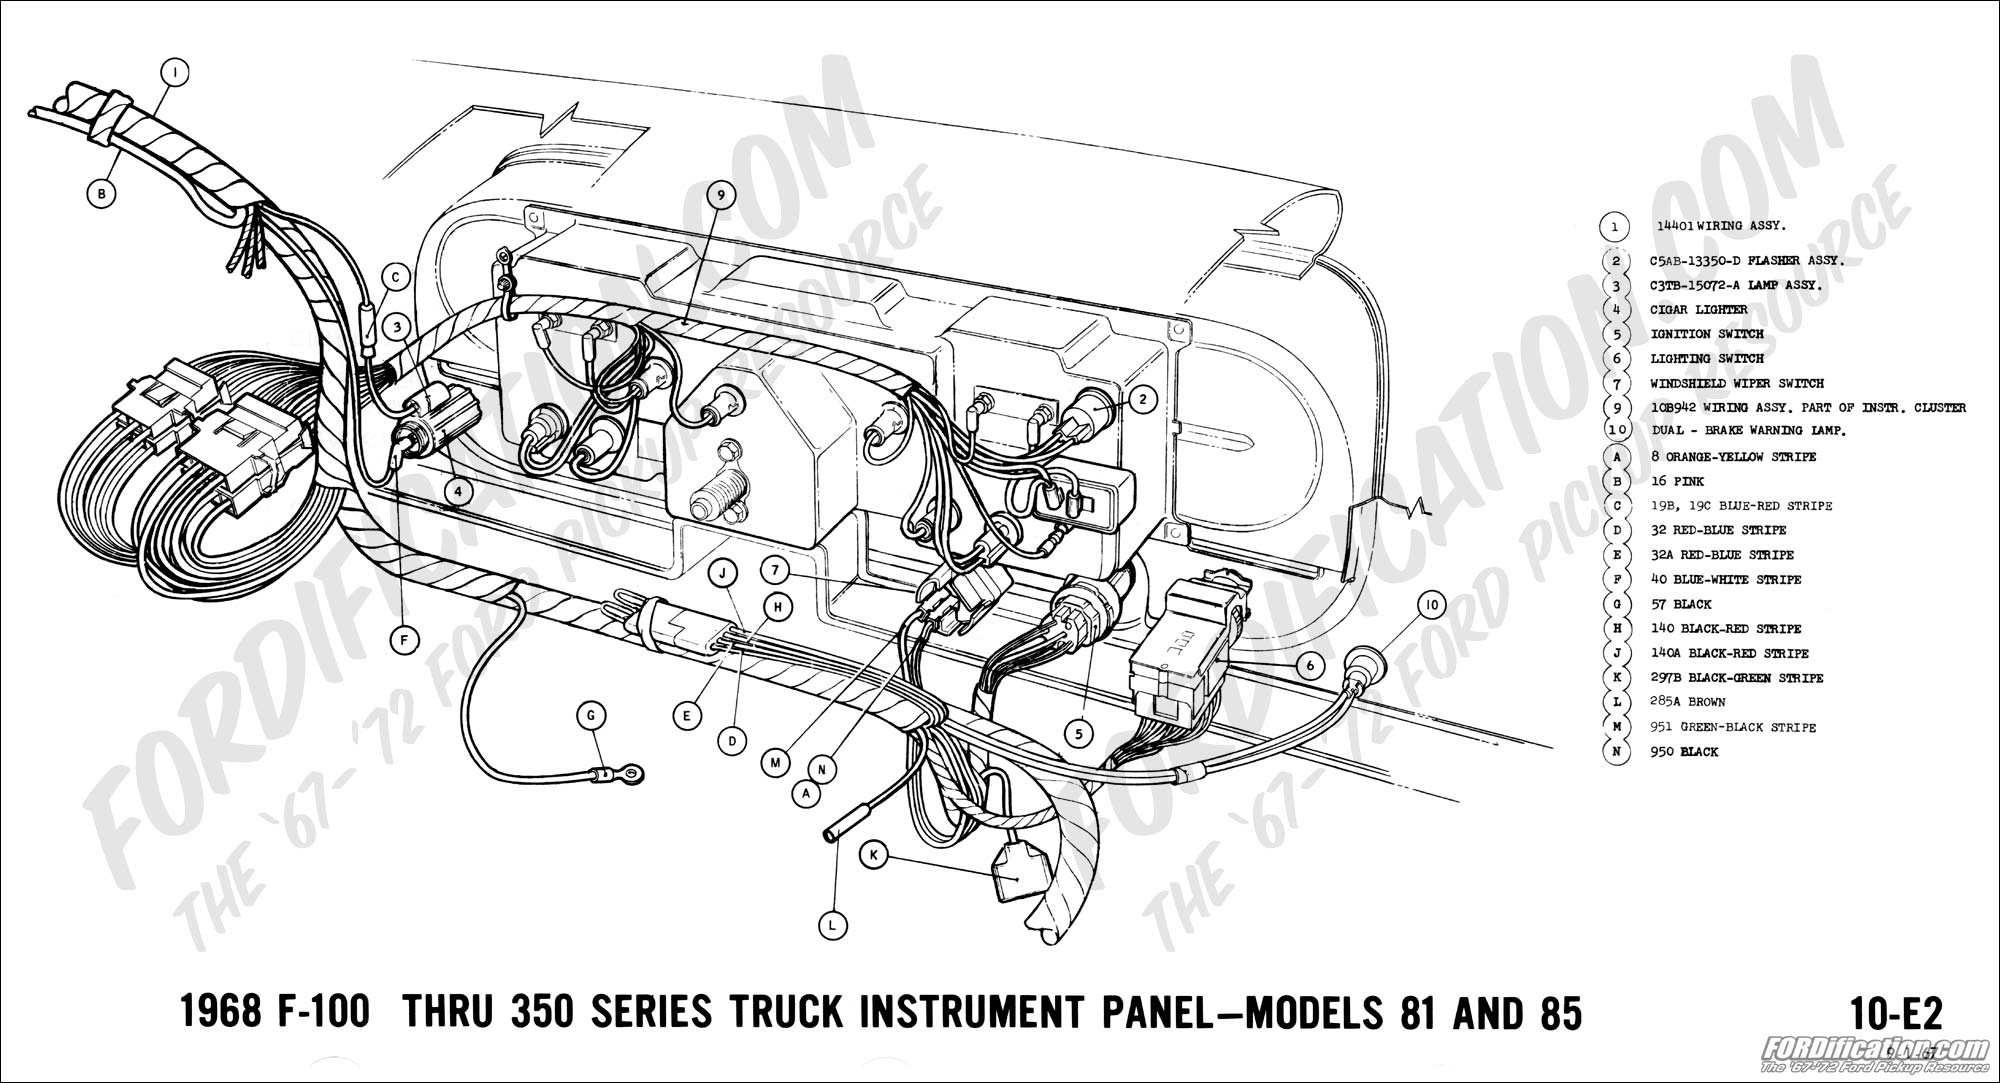 hight resolution of manual diagrams legend 1968 f 100 thru f 350